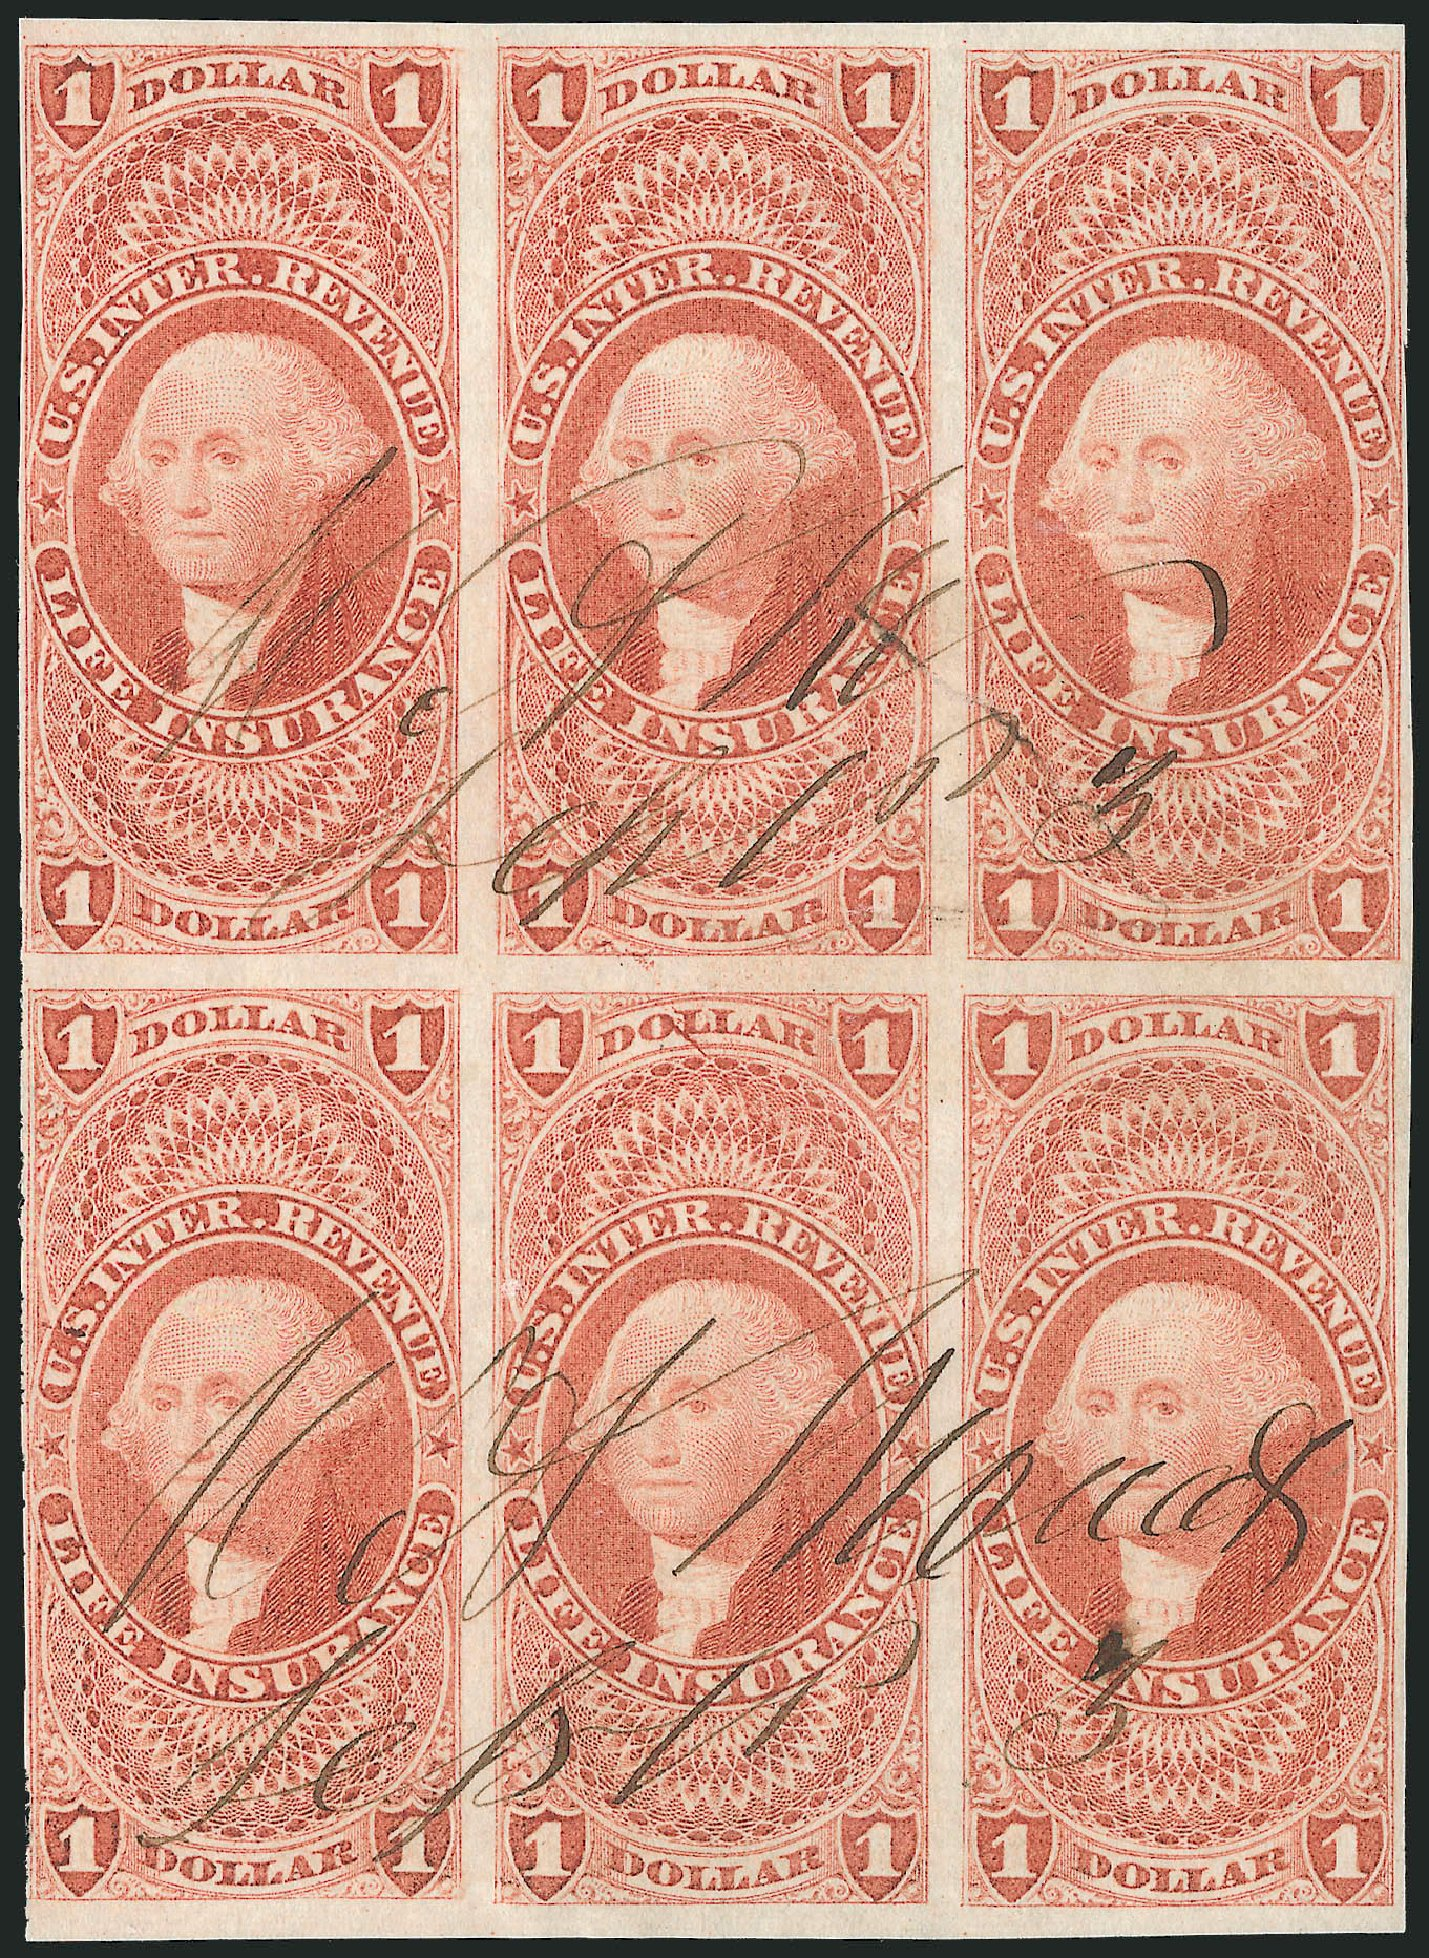 Costs of US Stamp Scott Catalog #R71 - US$1.00 1862 Revenue Life Insurance. Robert Siegel Auction Galleries, Dec 2014, Sale 1089, Lot 356